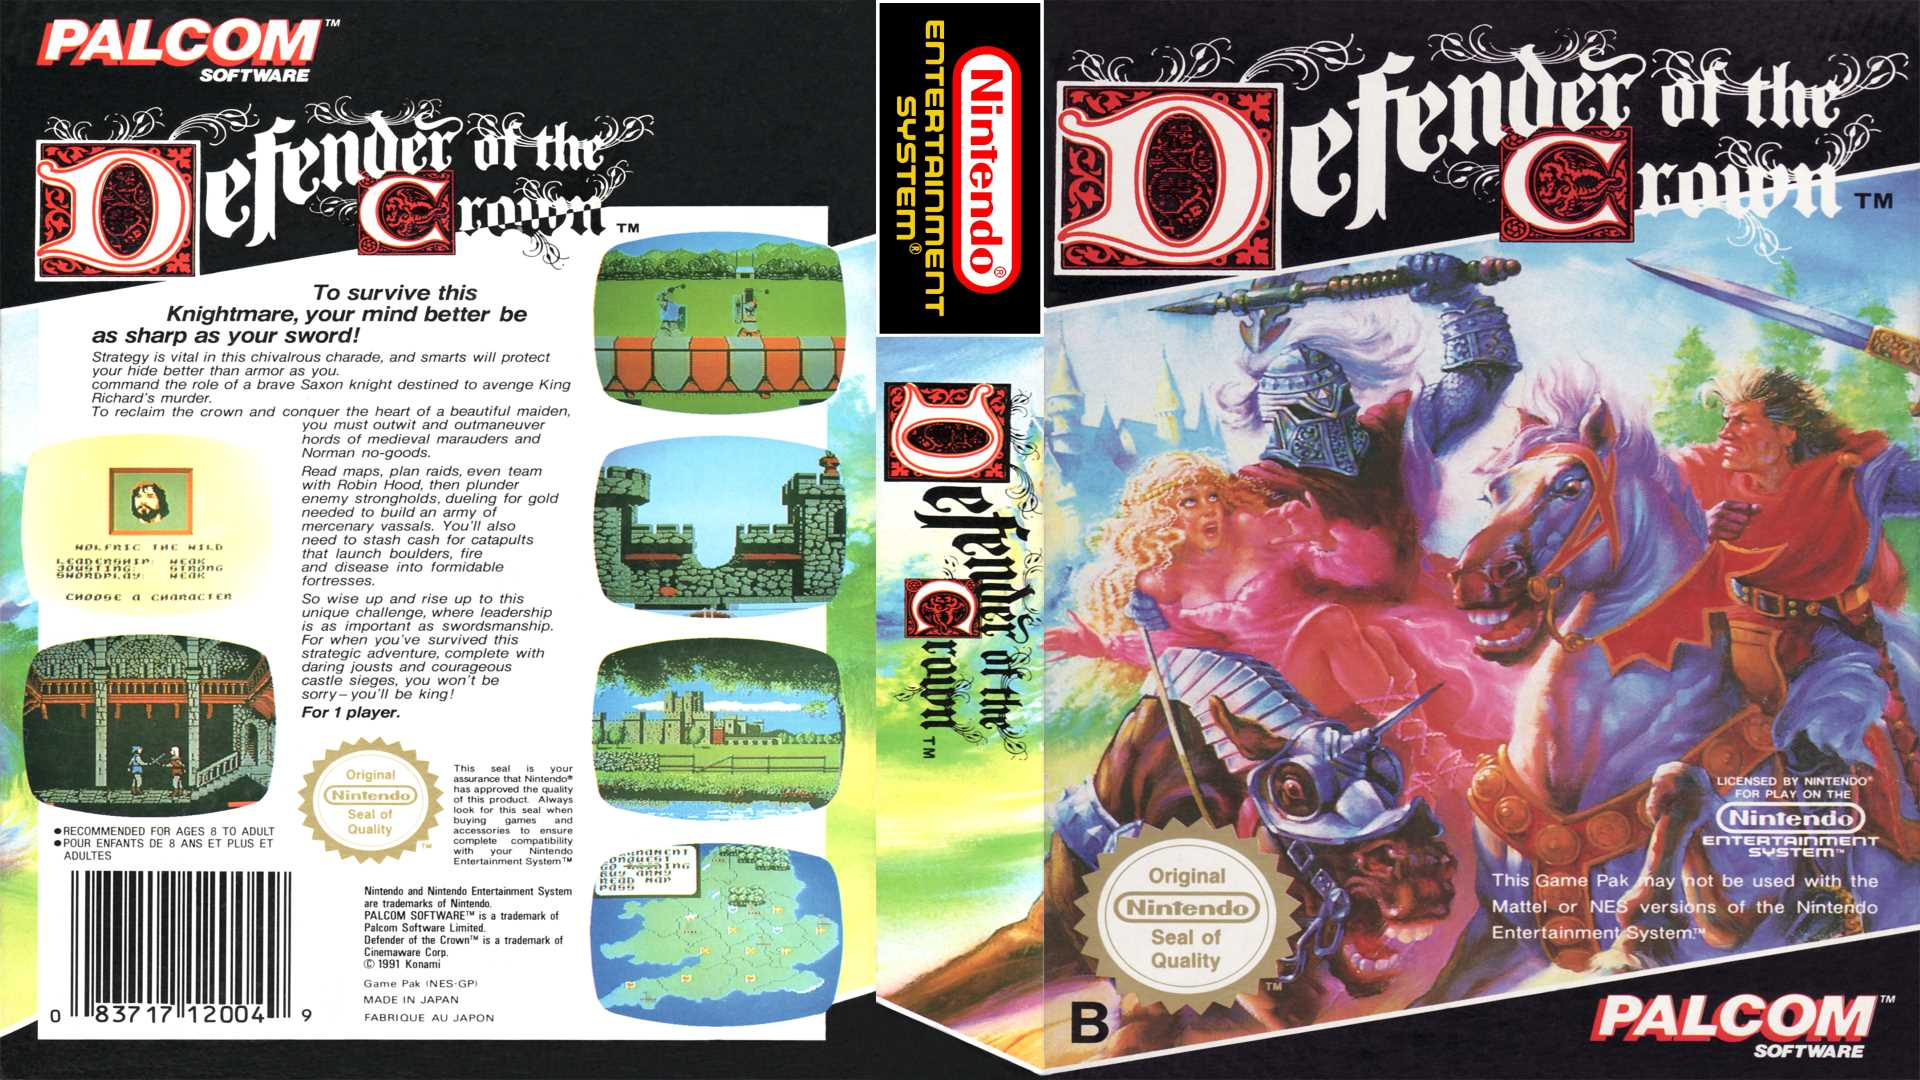 Wunderbare Jahre oder: Retro Teil 1 - Defender of the Crown Cover